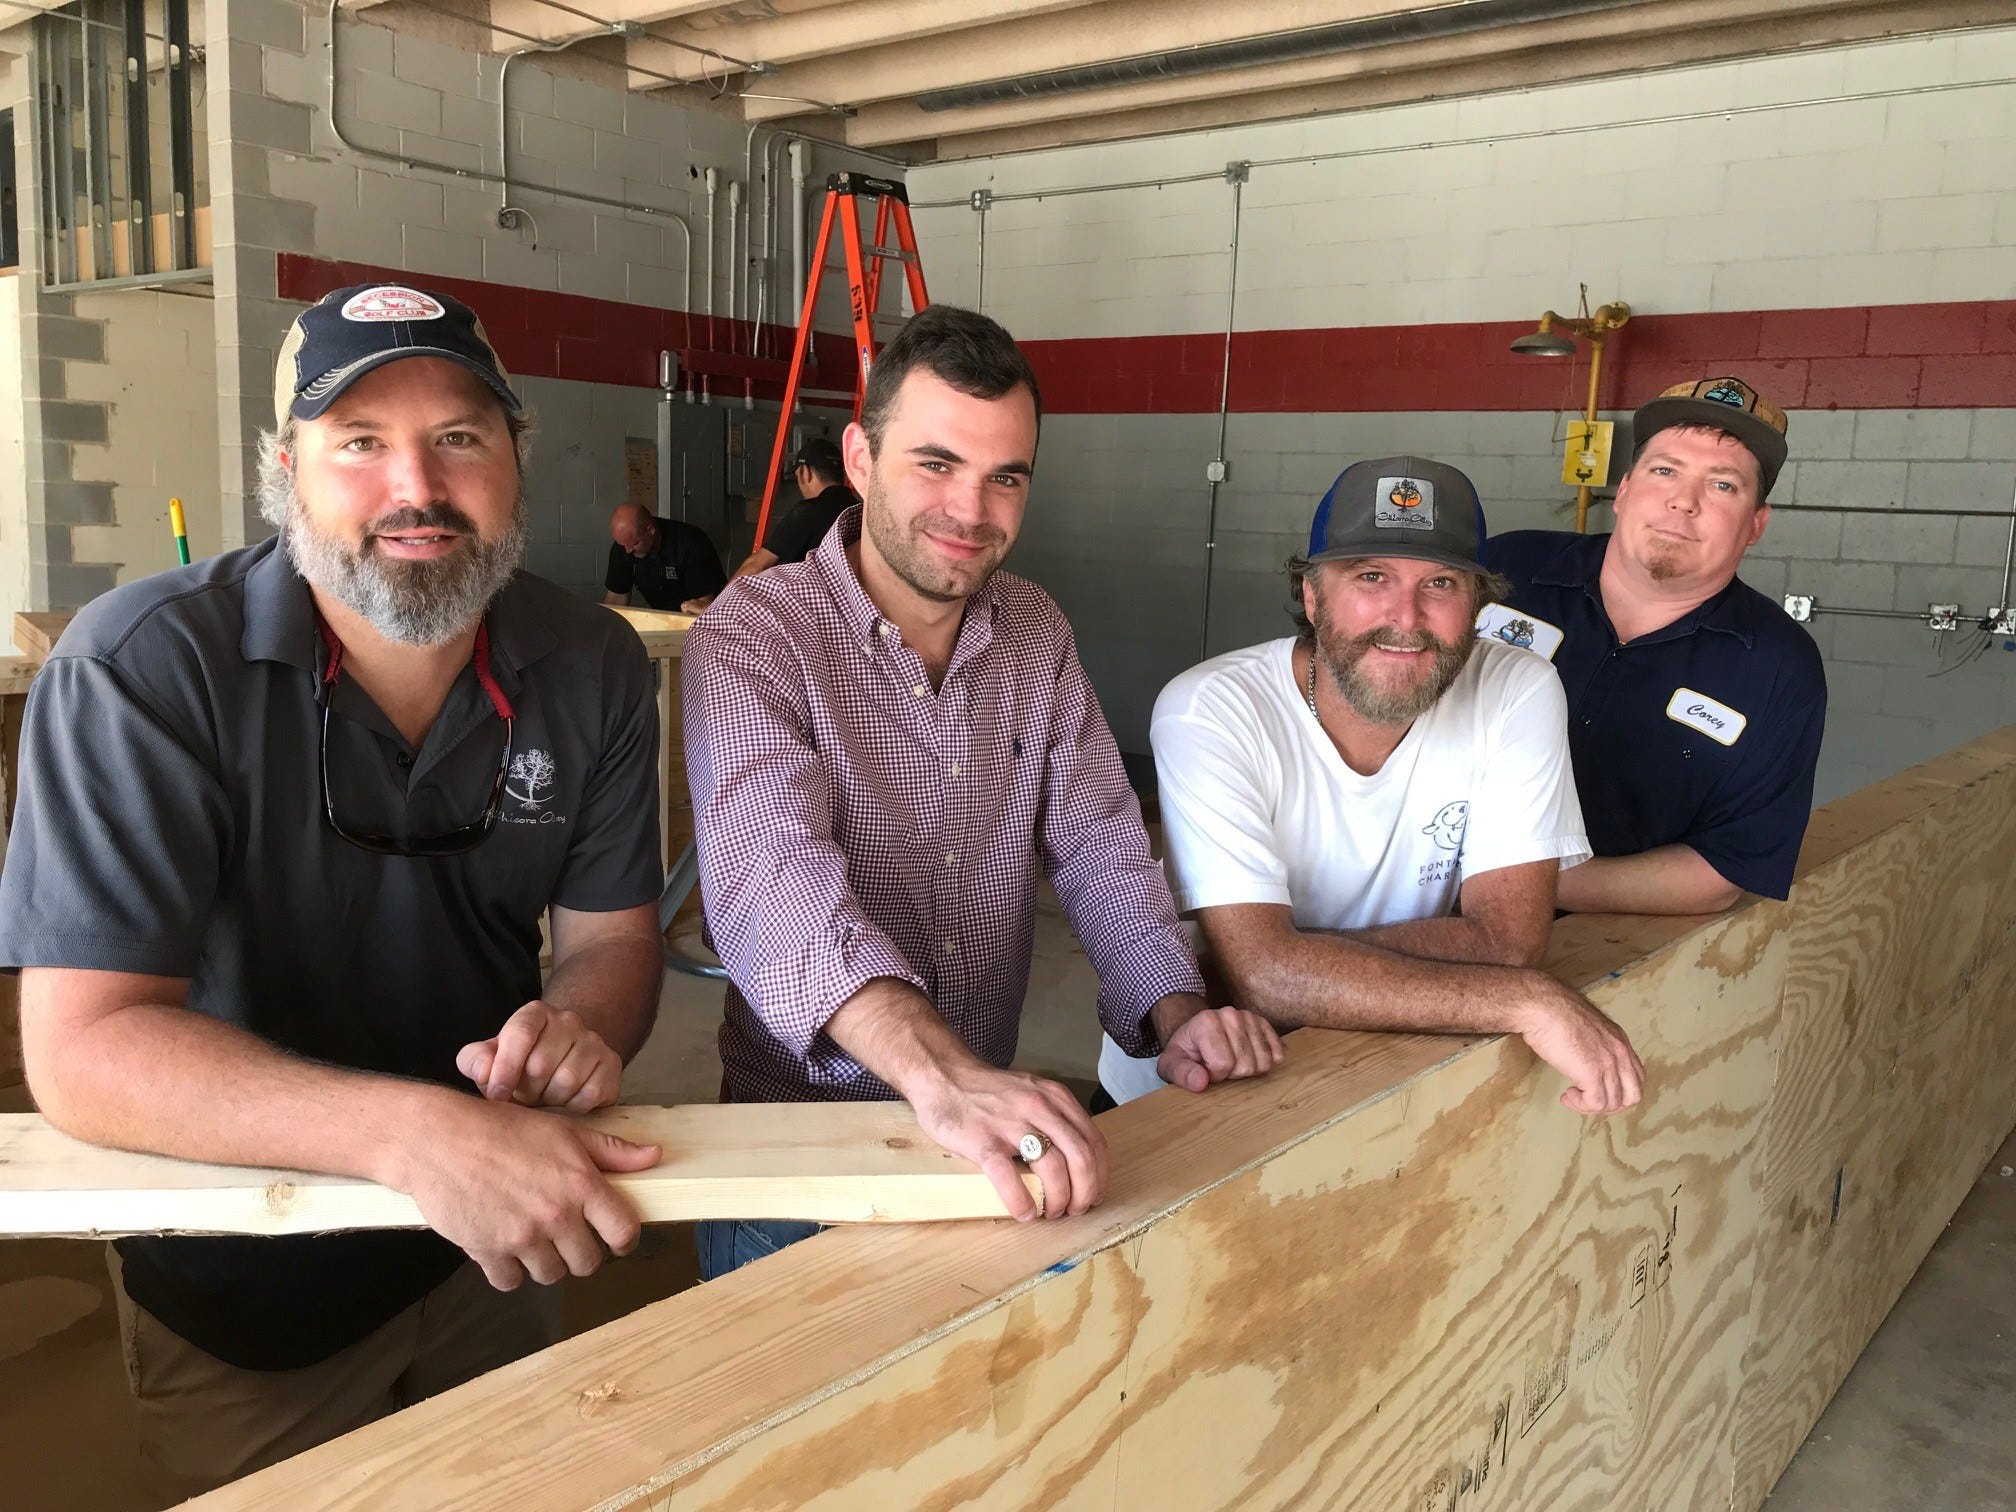 Image of: Elderly Chicora Alley Tr Greg Gimpel Clay Hall Ben Dixon Corey Fulmar The Greenville News Greenville Restaurant Is Planning New Location In Travelers Rest